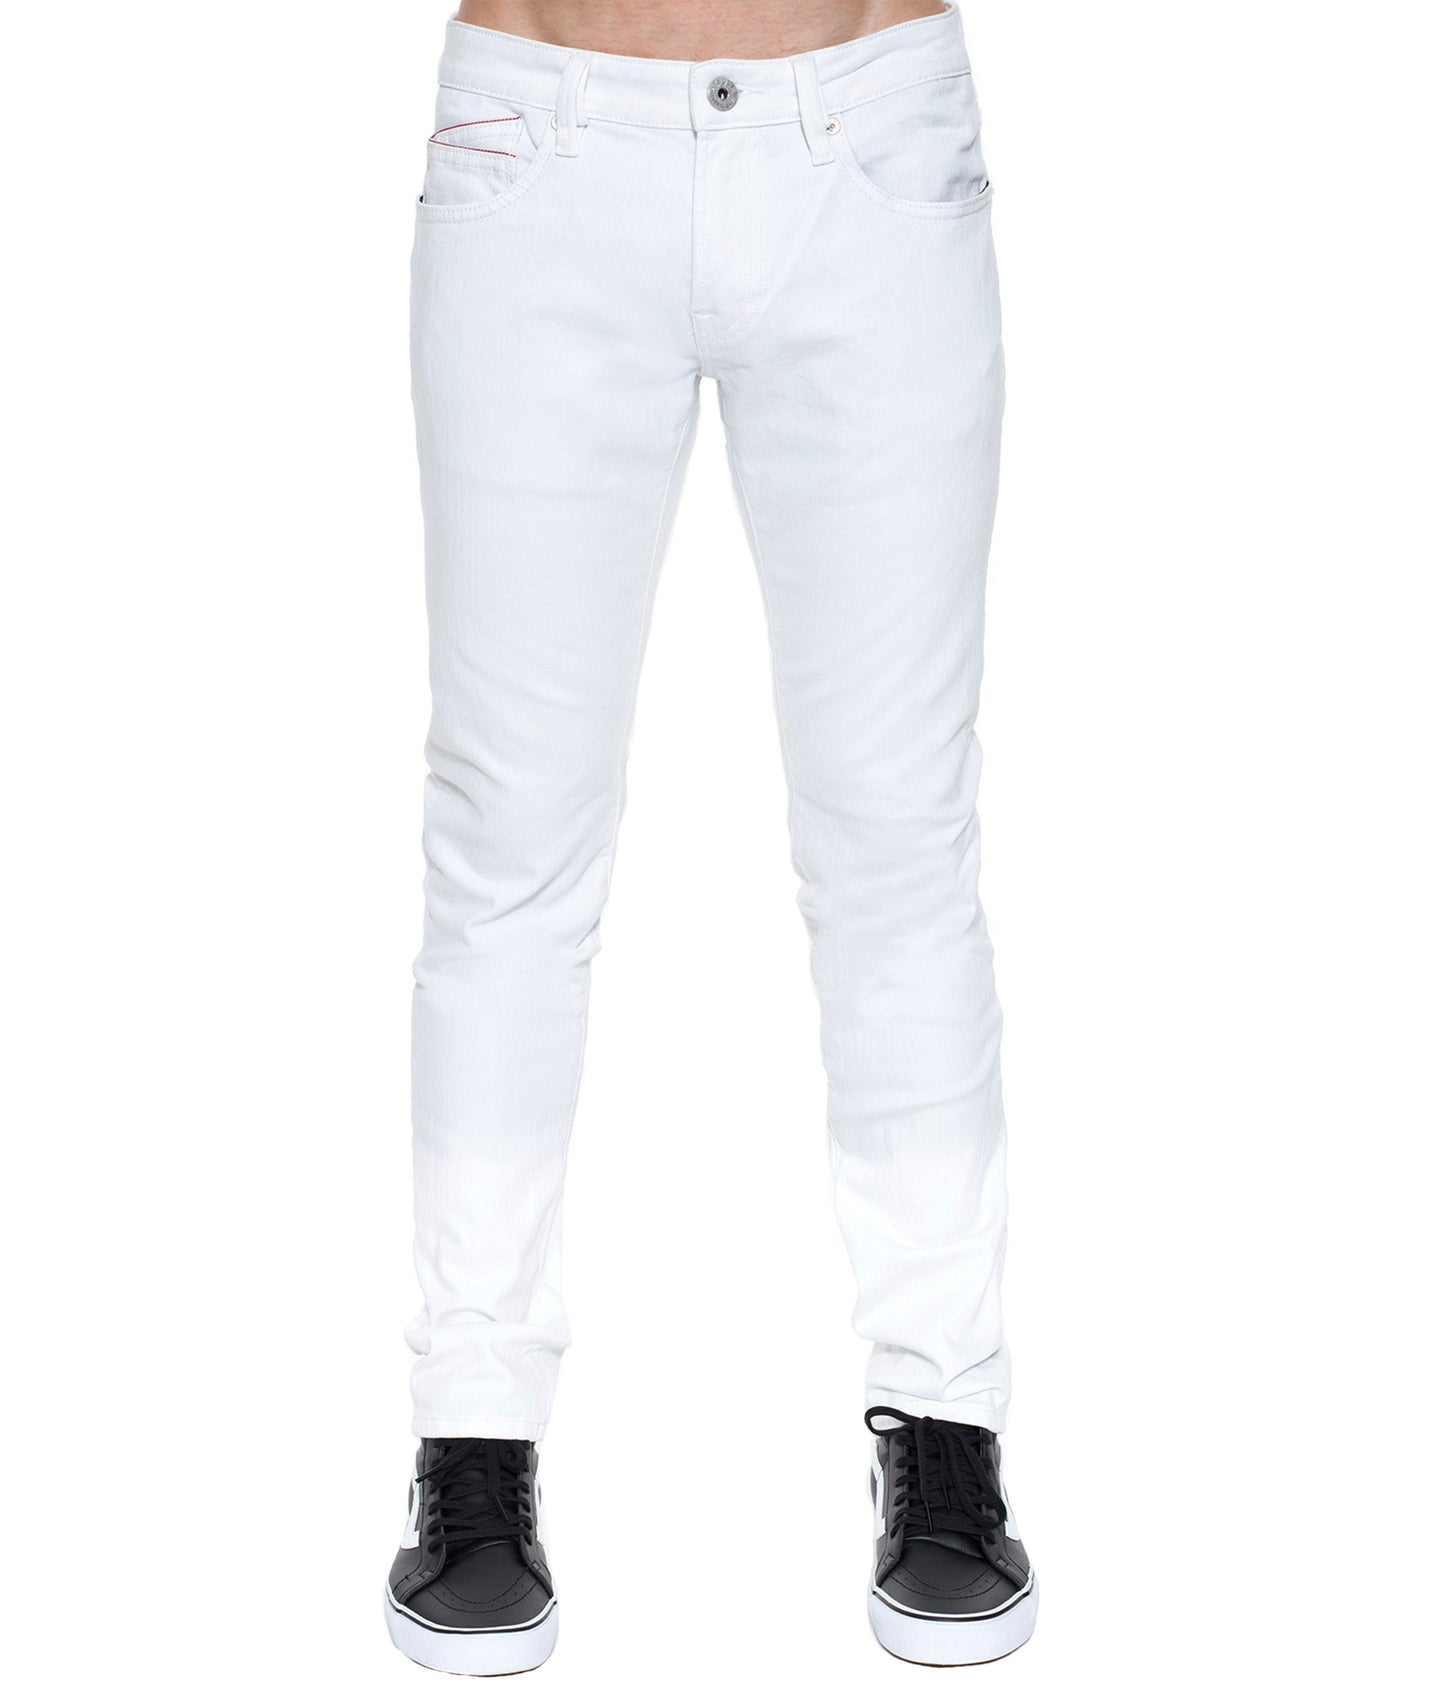 Cult of IndividualityMen's Rocker Slim Denim Jeans in White44